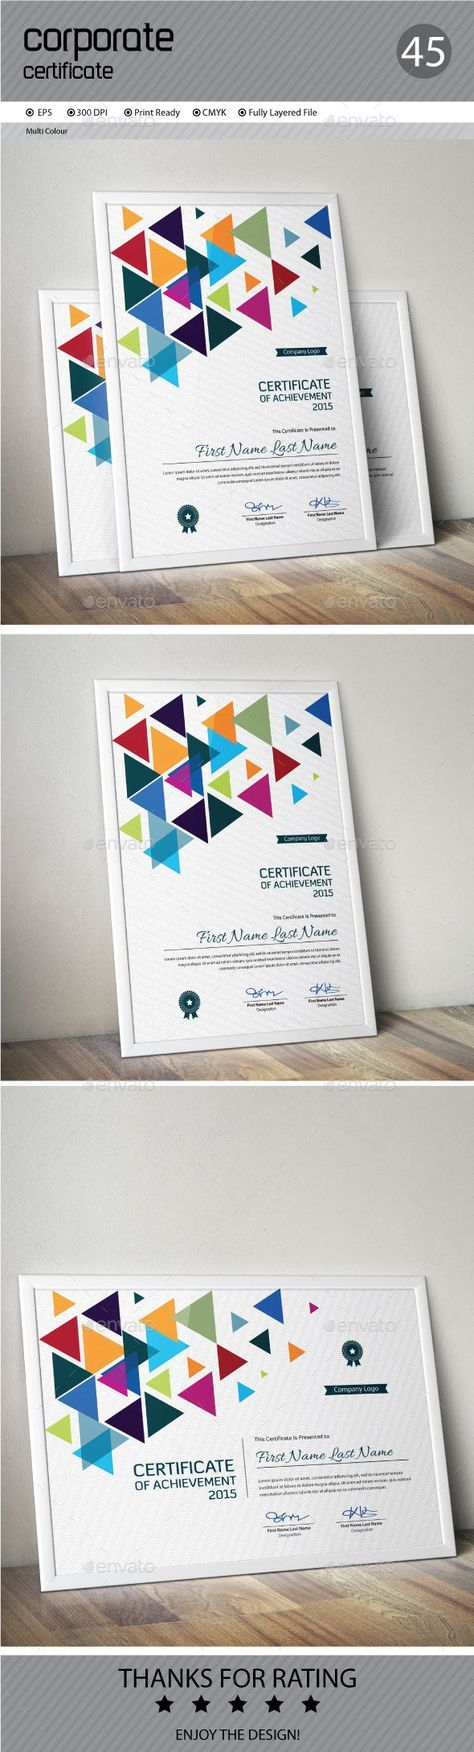 Certificate Template Vector EPS. Download here: http://graphicriver.net/item/certificate/13813526?ref=ksioks